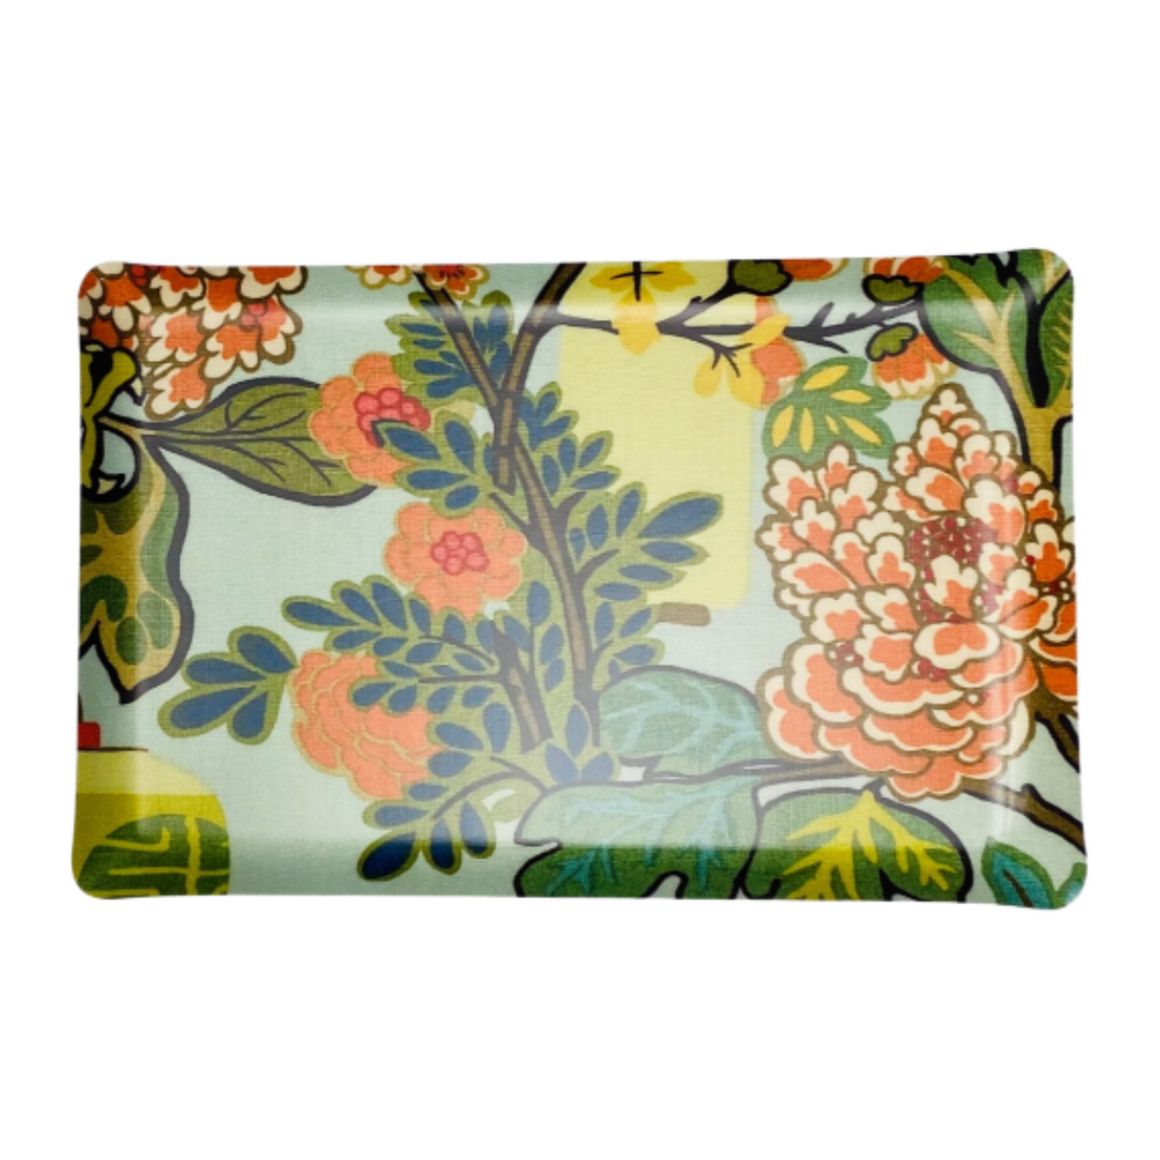 Chiang Mai Dragon Acqua Fabric Laminated Serving Tray